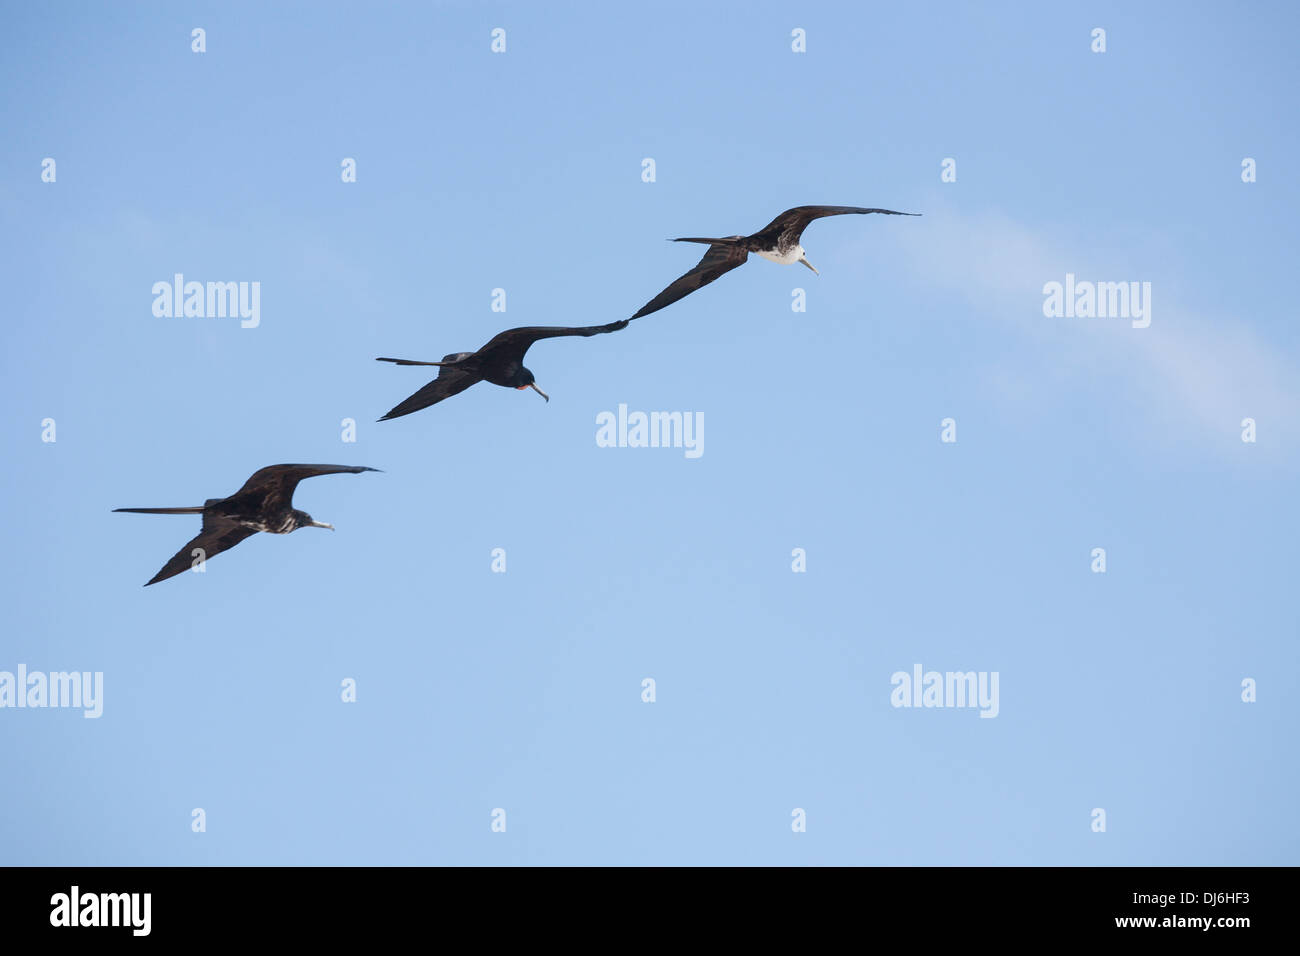 Three Magnificent Frigatebirds flying in formation. A male and two juvenile birds fly wing to wing. - Stock Image